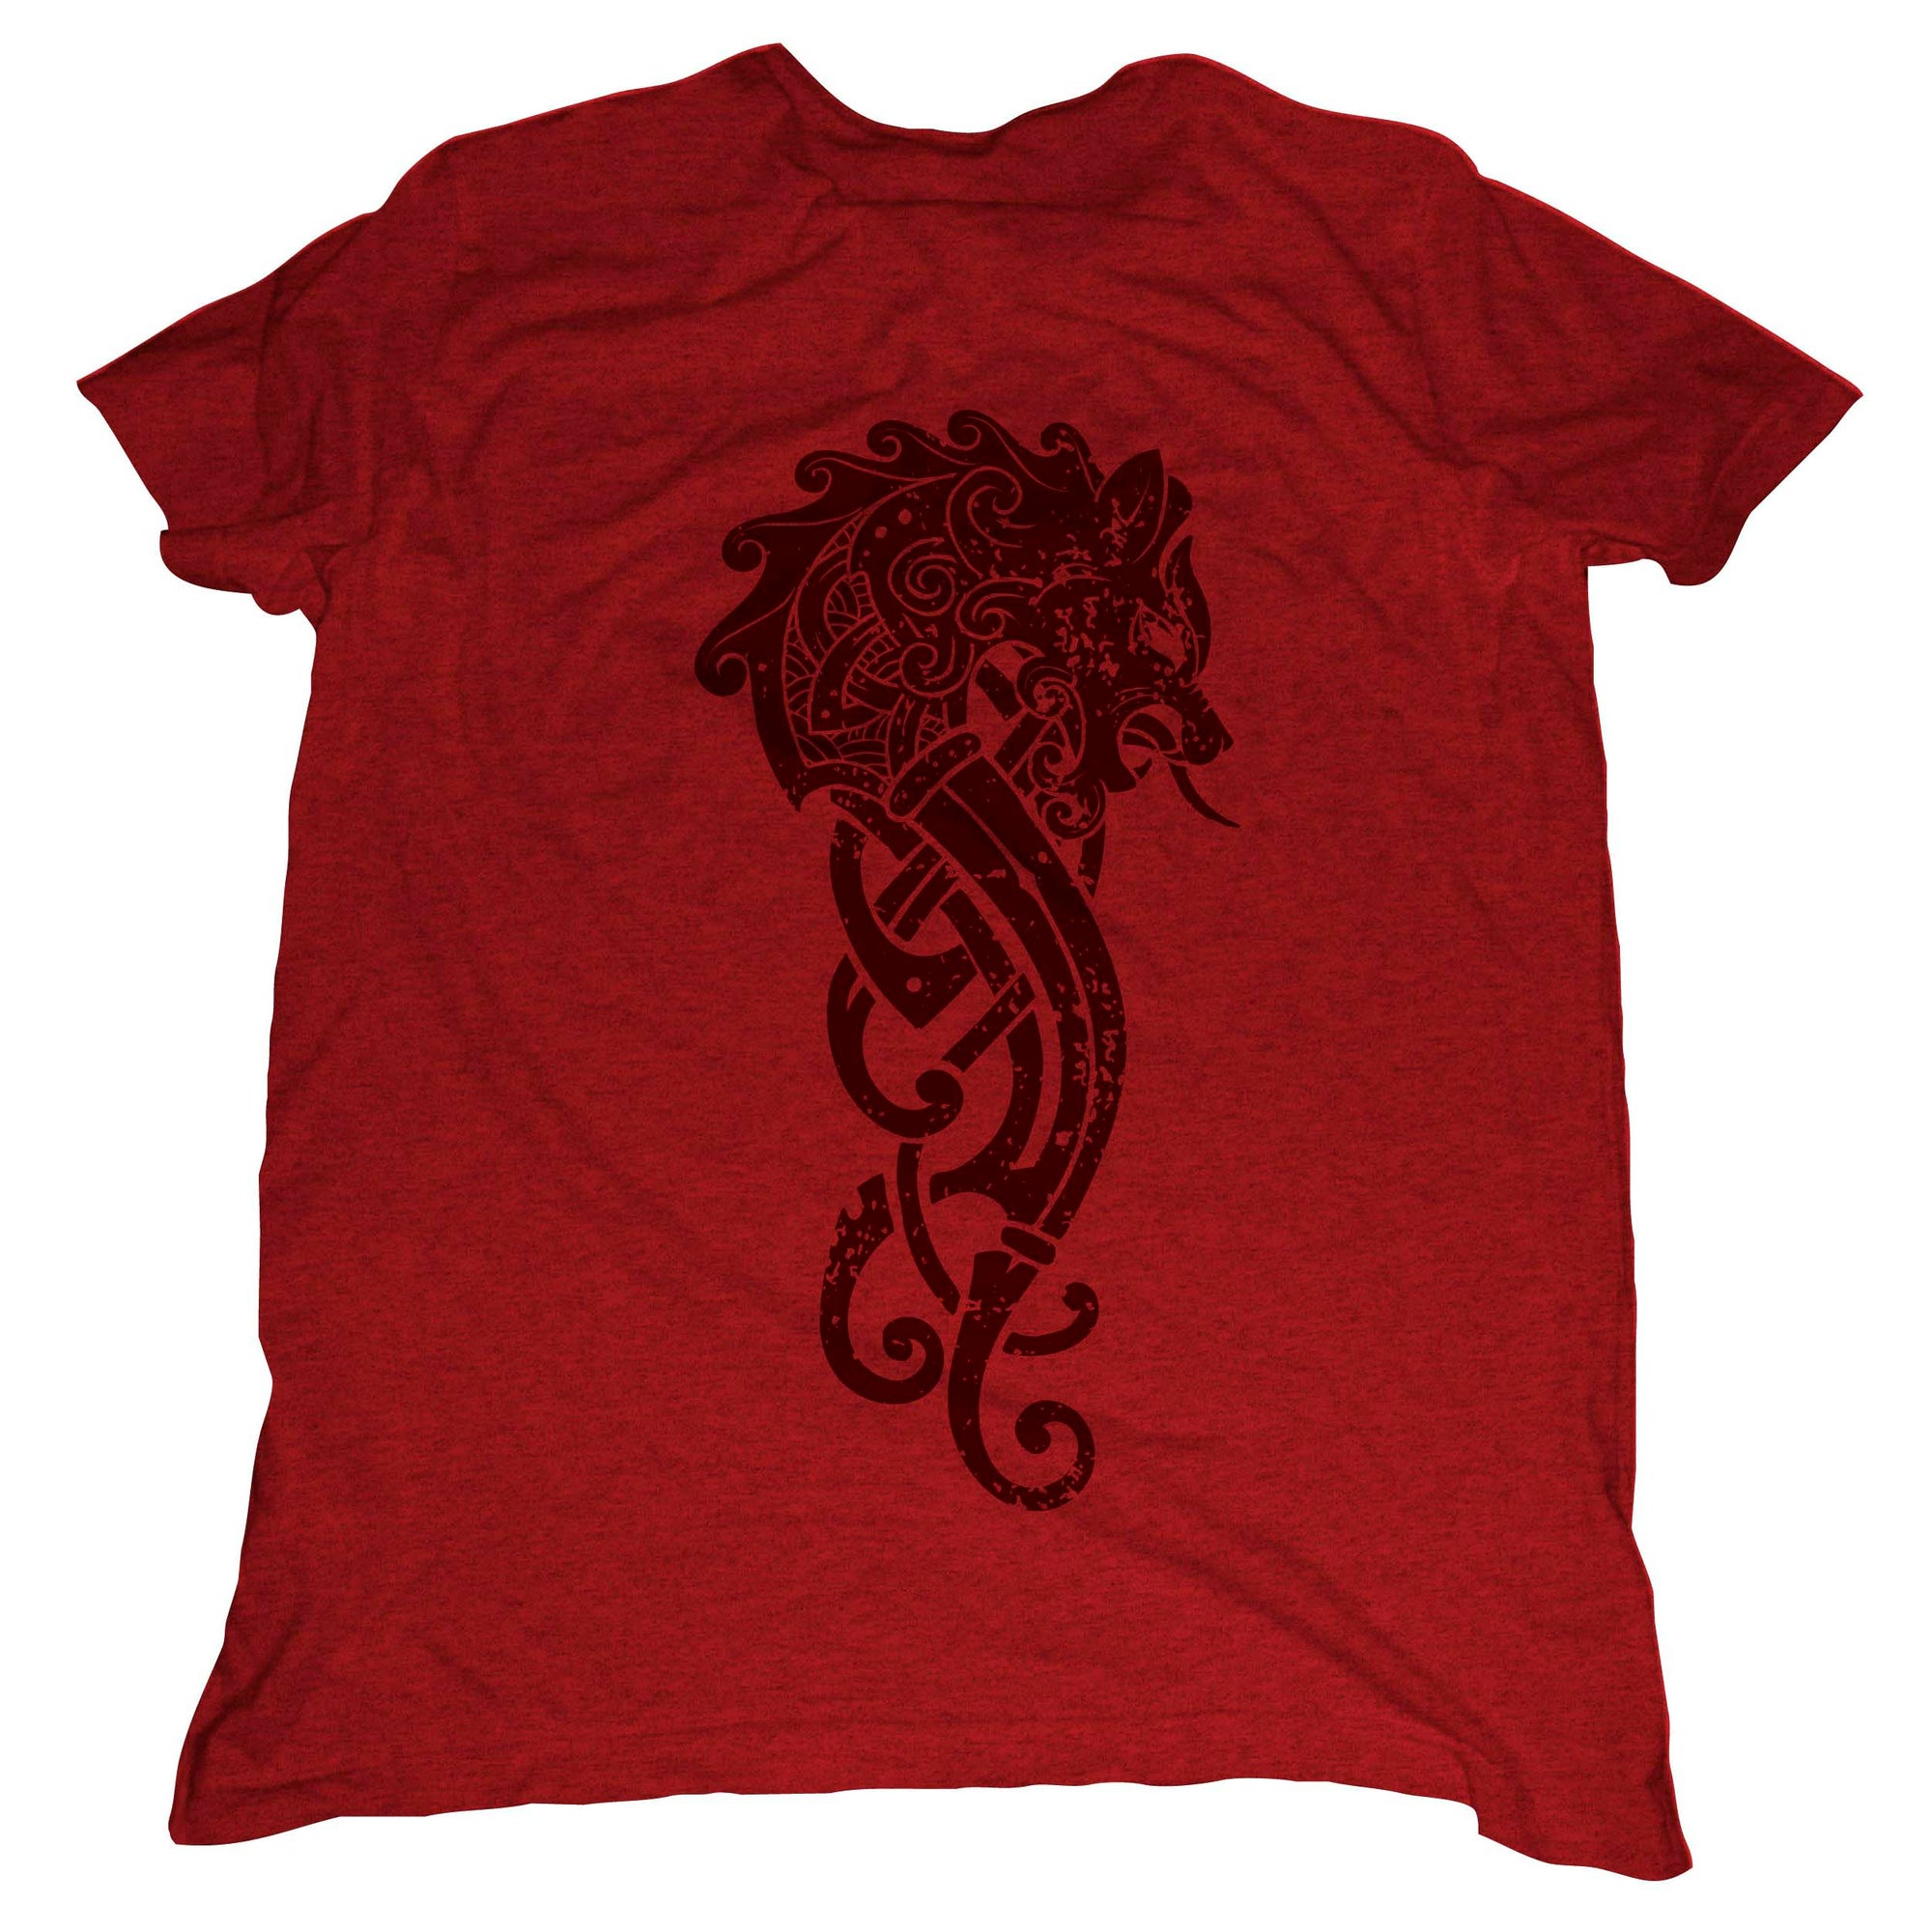 Luminosity (Red) T-Shirt